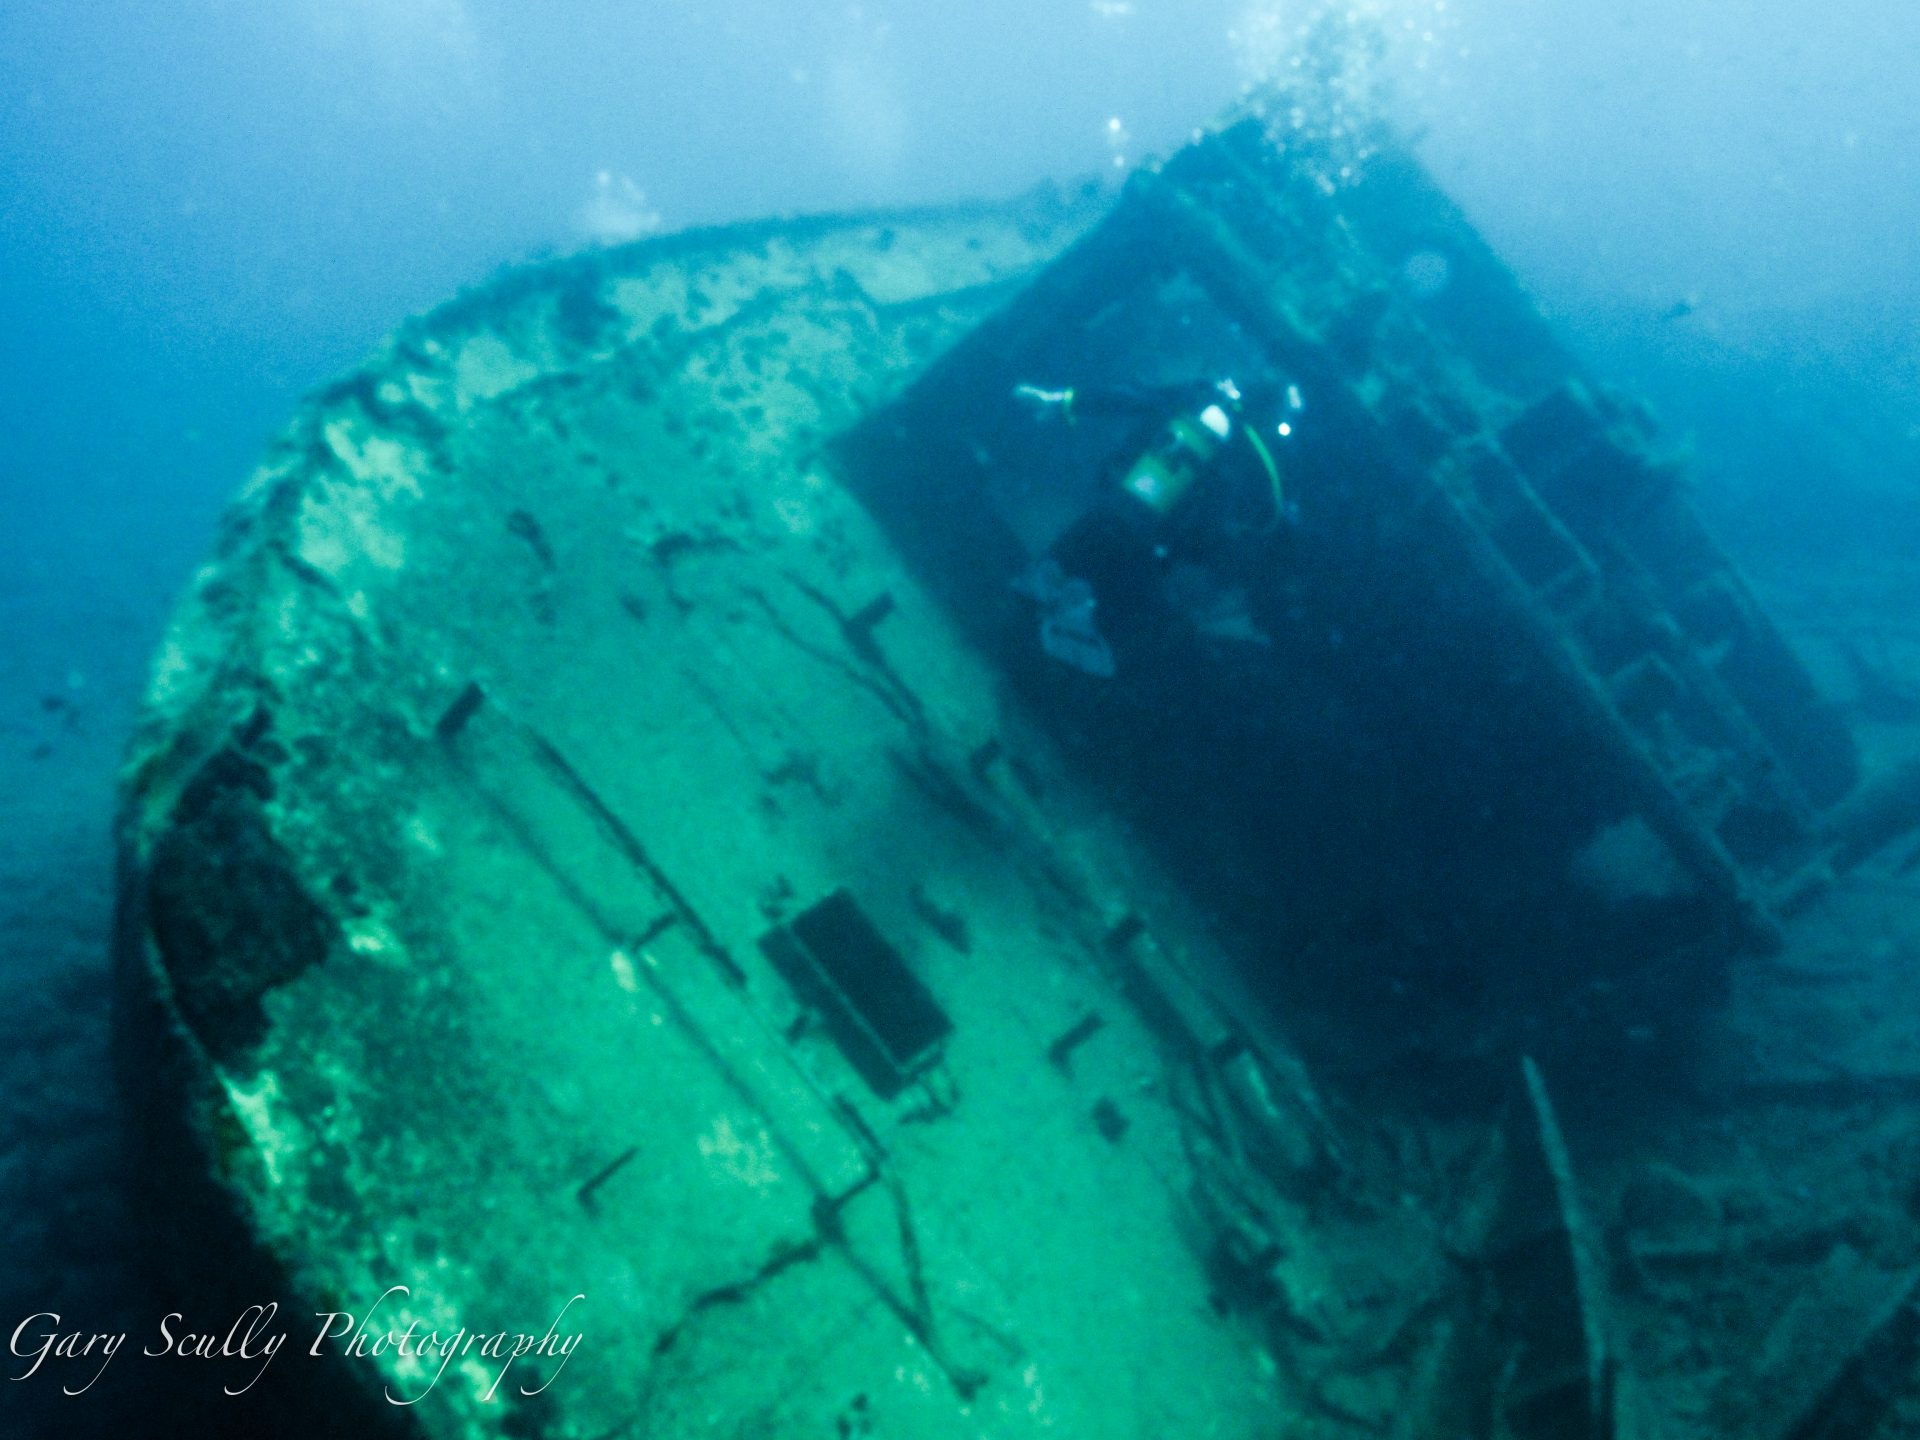 Our wreck dives